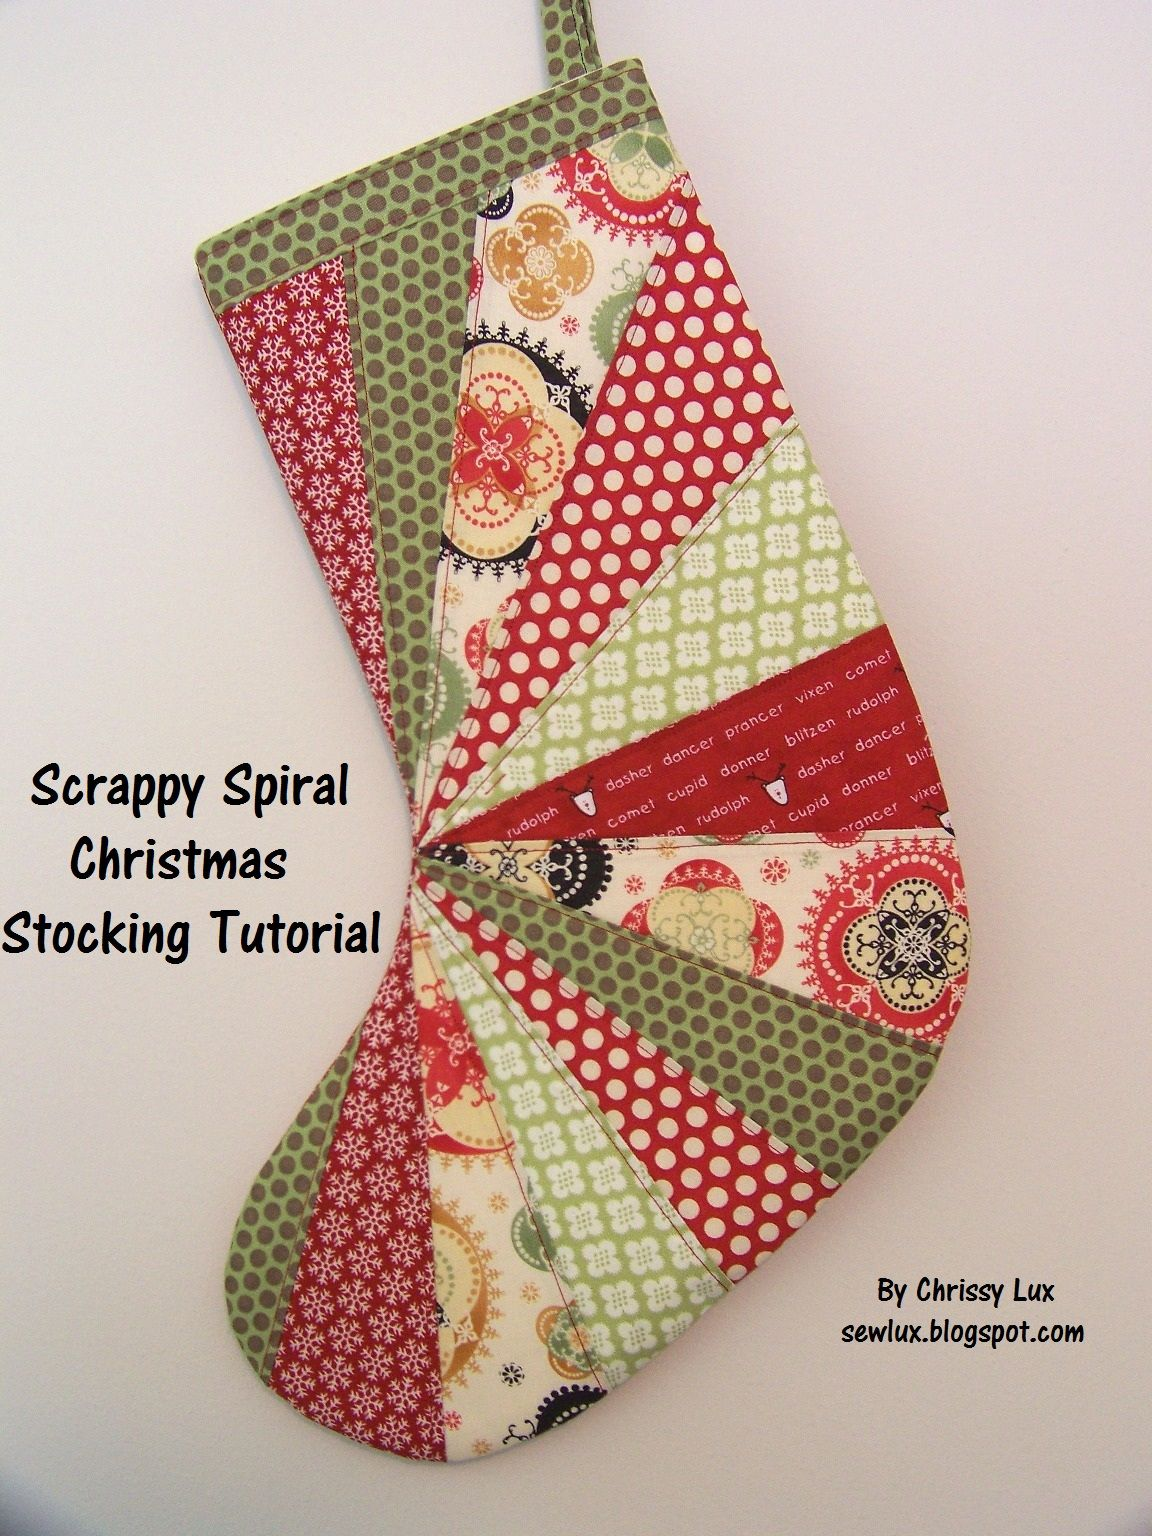 Free simple christmas stocking sewing patterns sew lux fabric free simple christmas stocking sewing patterns sew lux fabric and gifts blog scrappy spiral jeuxipadfo Gallery